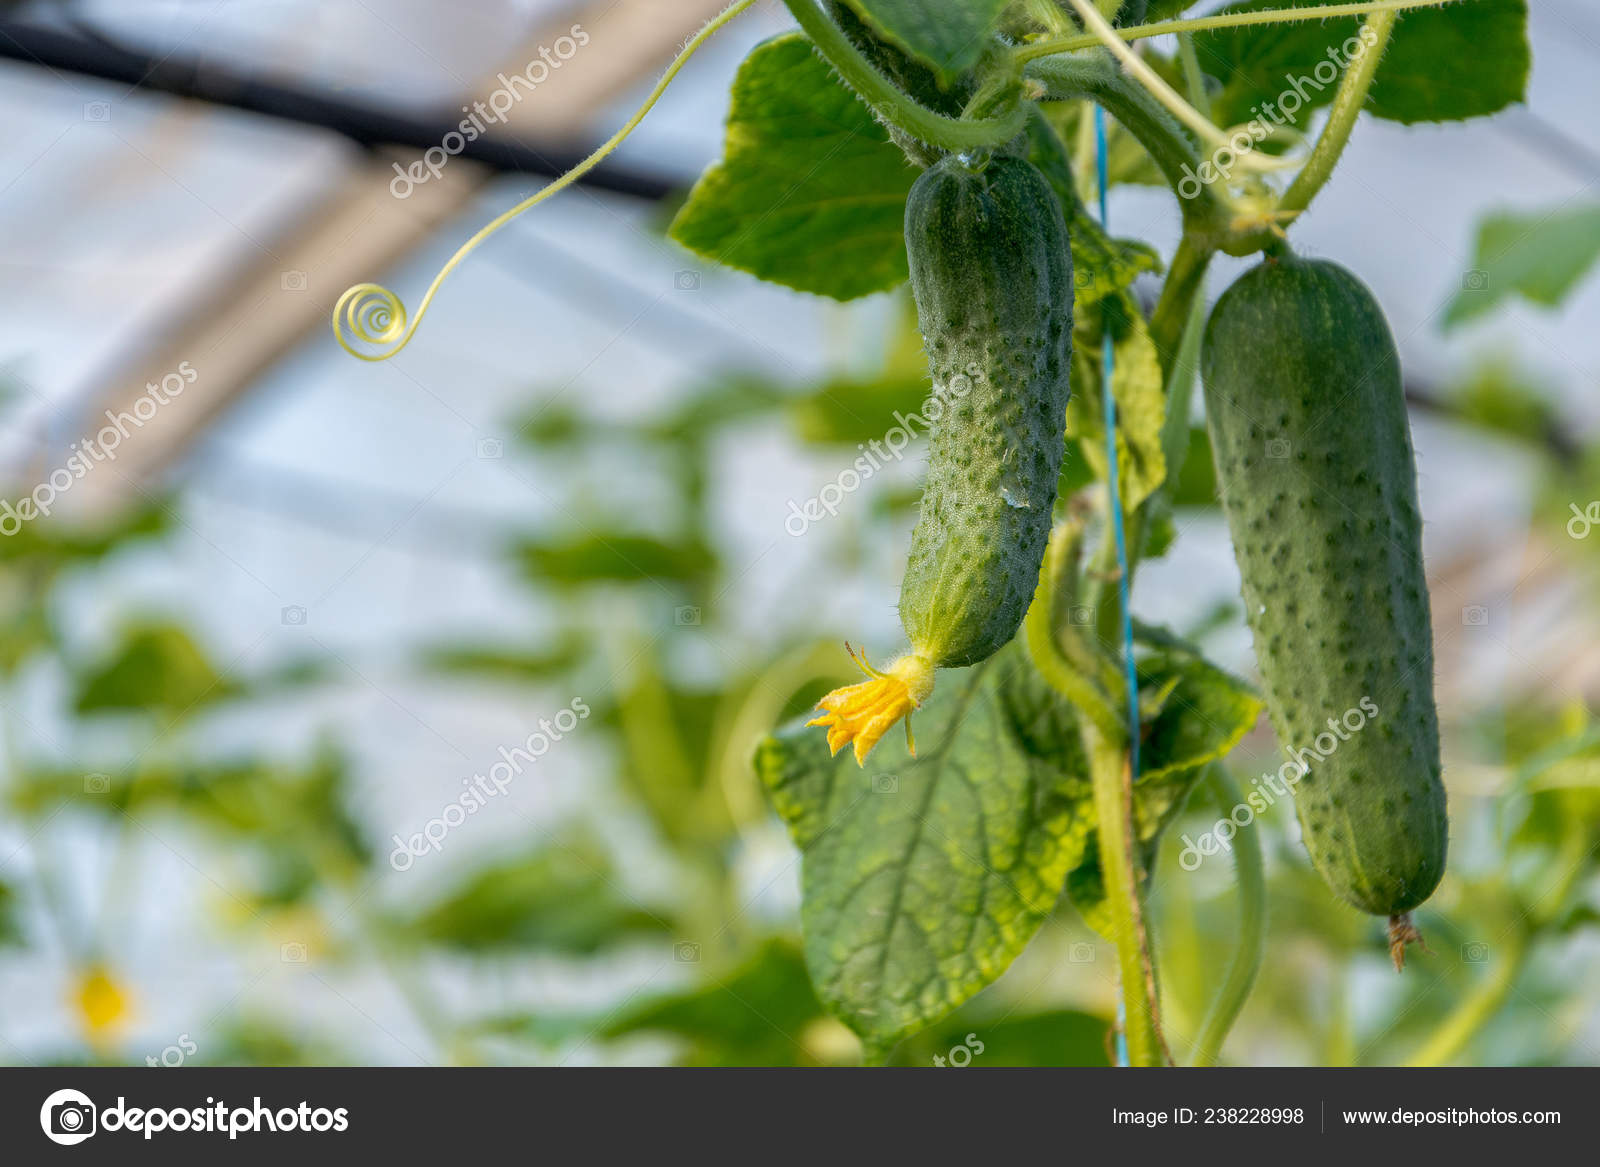 Cucumbers Growing Greenhouse Flowers Cucumber Ovaries